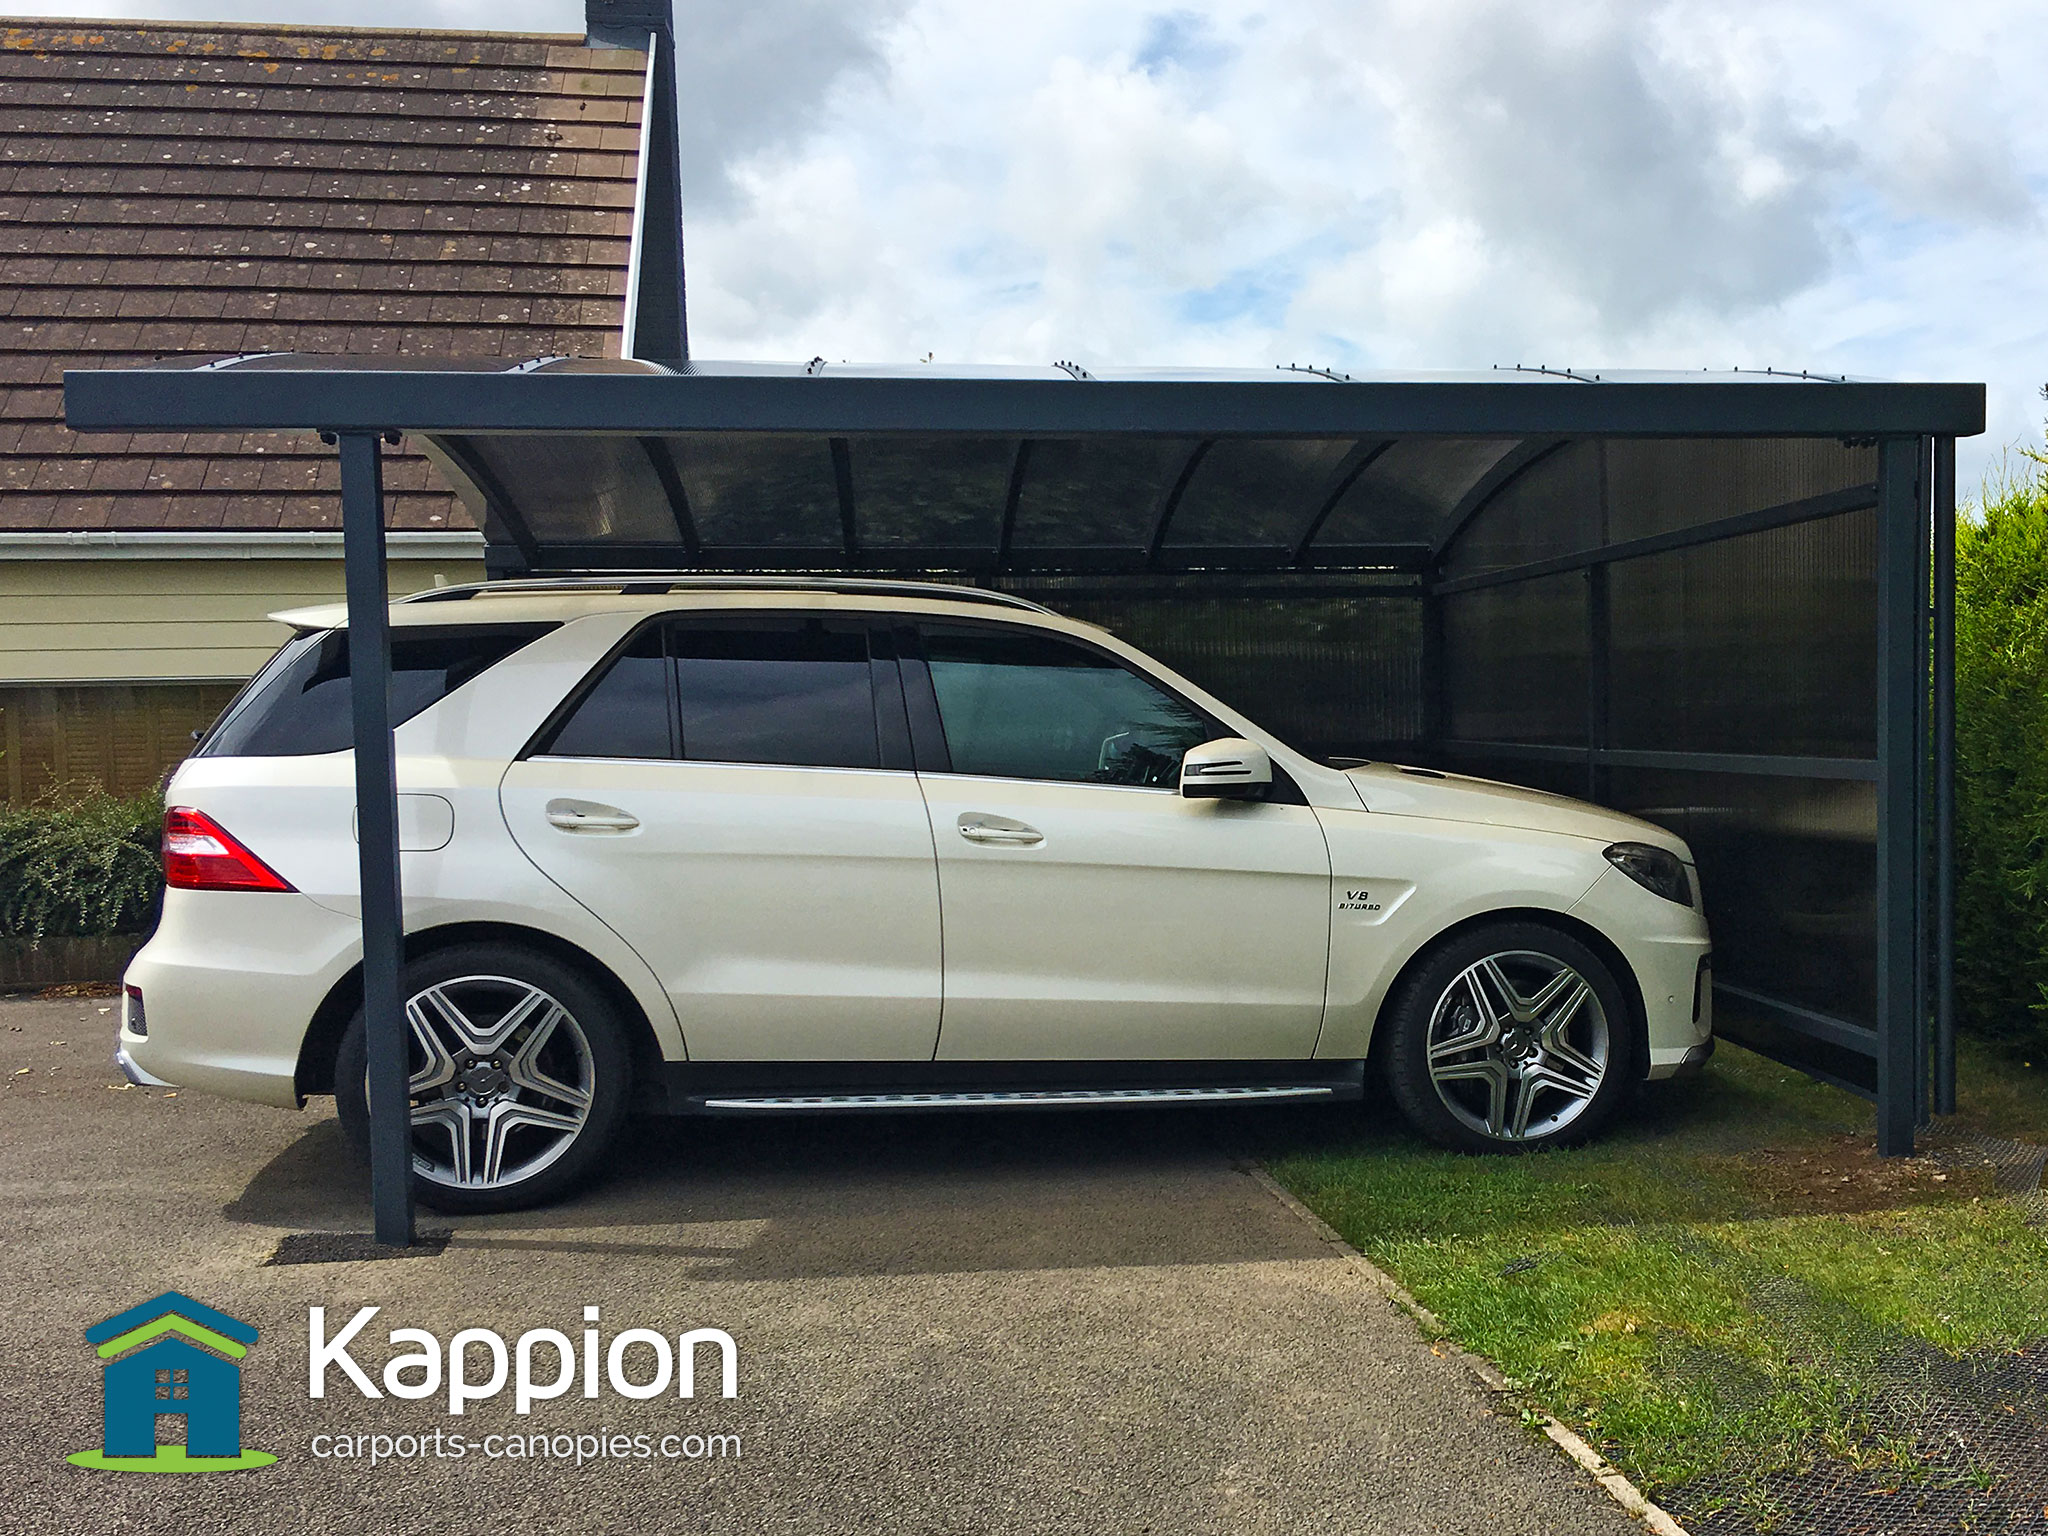 Enclosed Carports Car Canopies : Carport canopy installed in swansea kappion carports